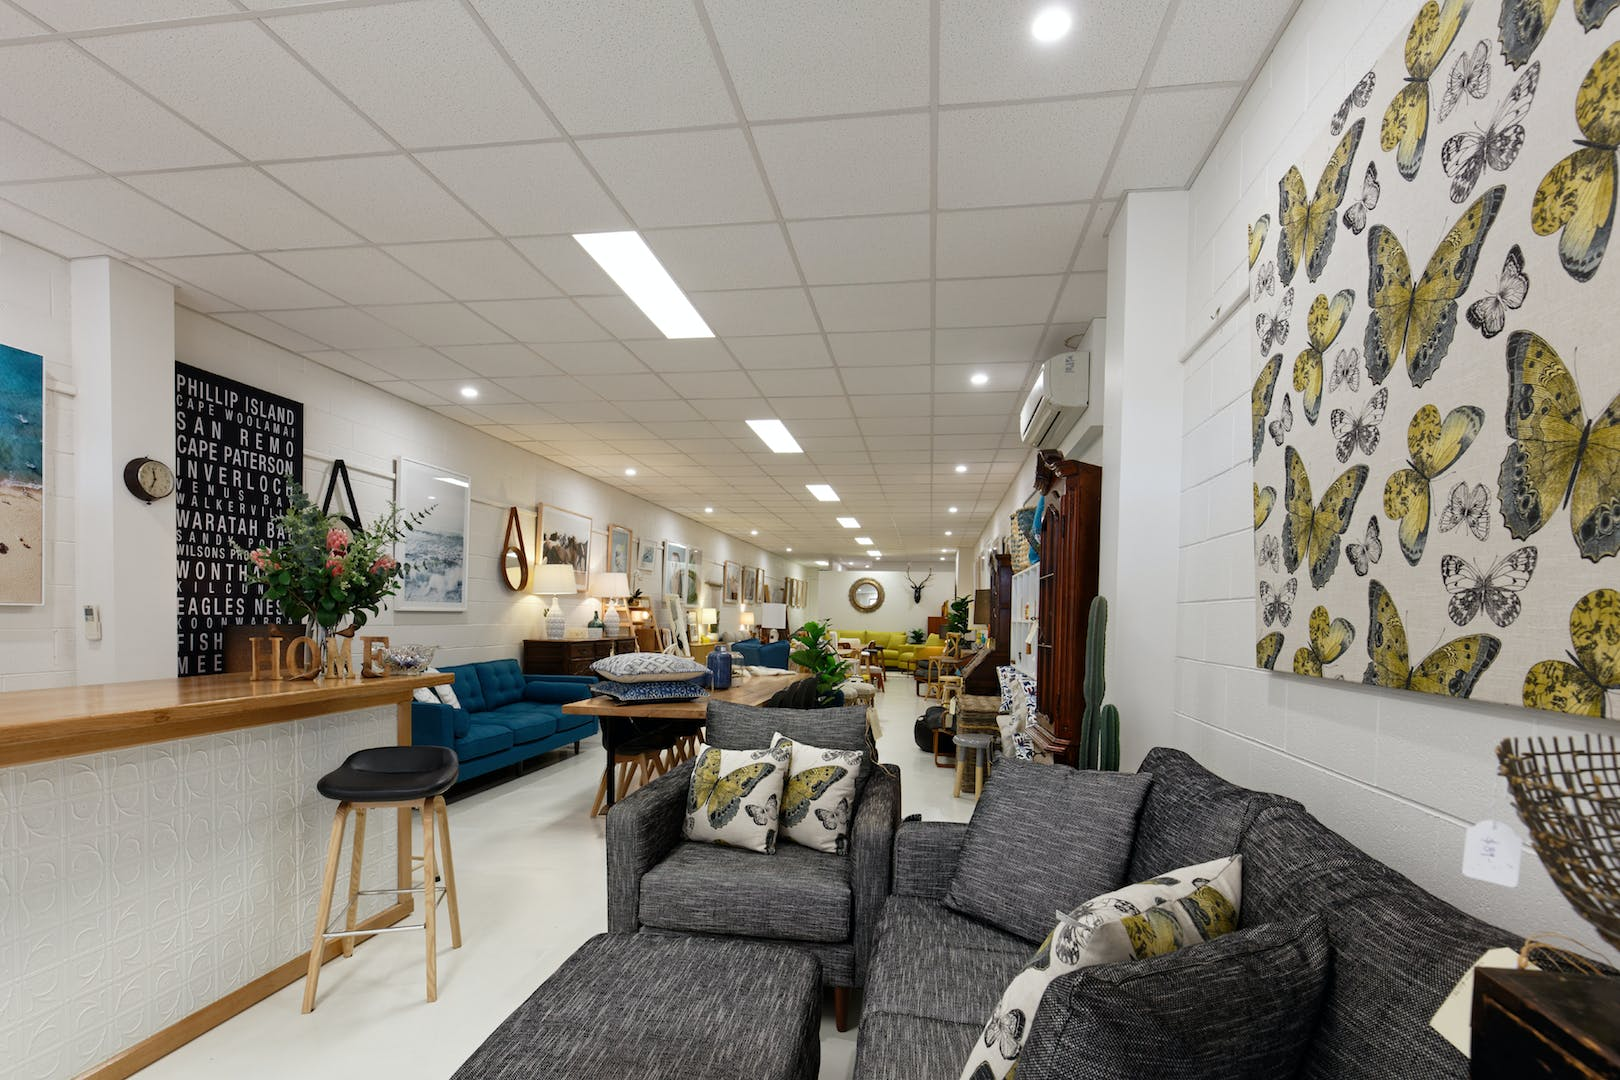 Souther Bazaar Inverloch3996